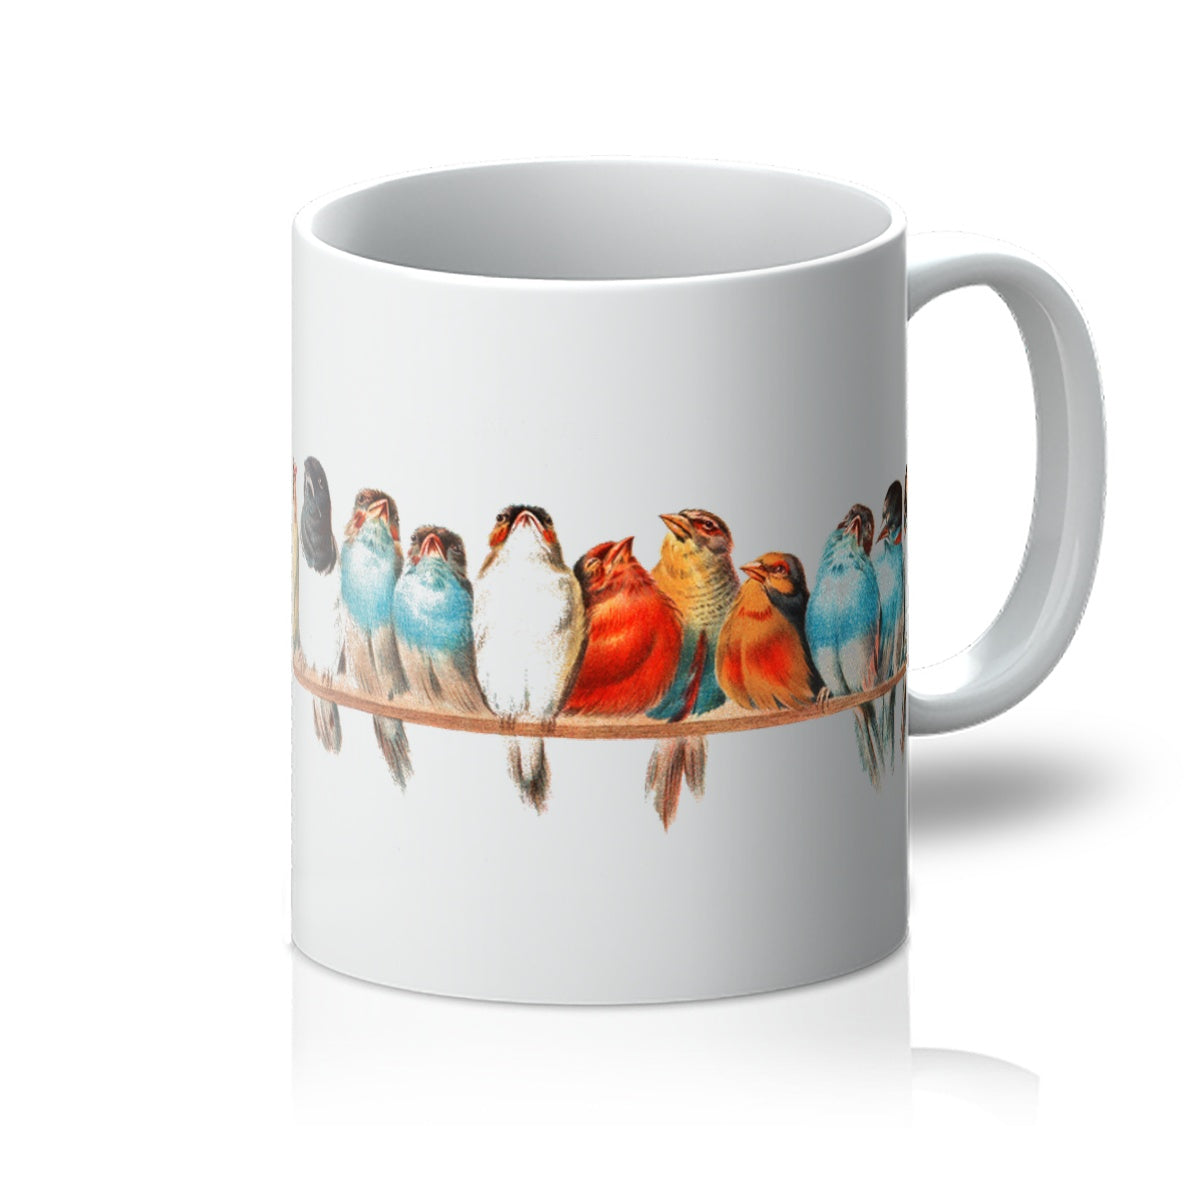 A Perch of Birds by Hector Giacomelli, 1880 - Mug